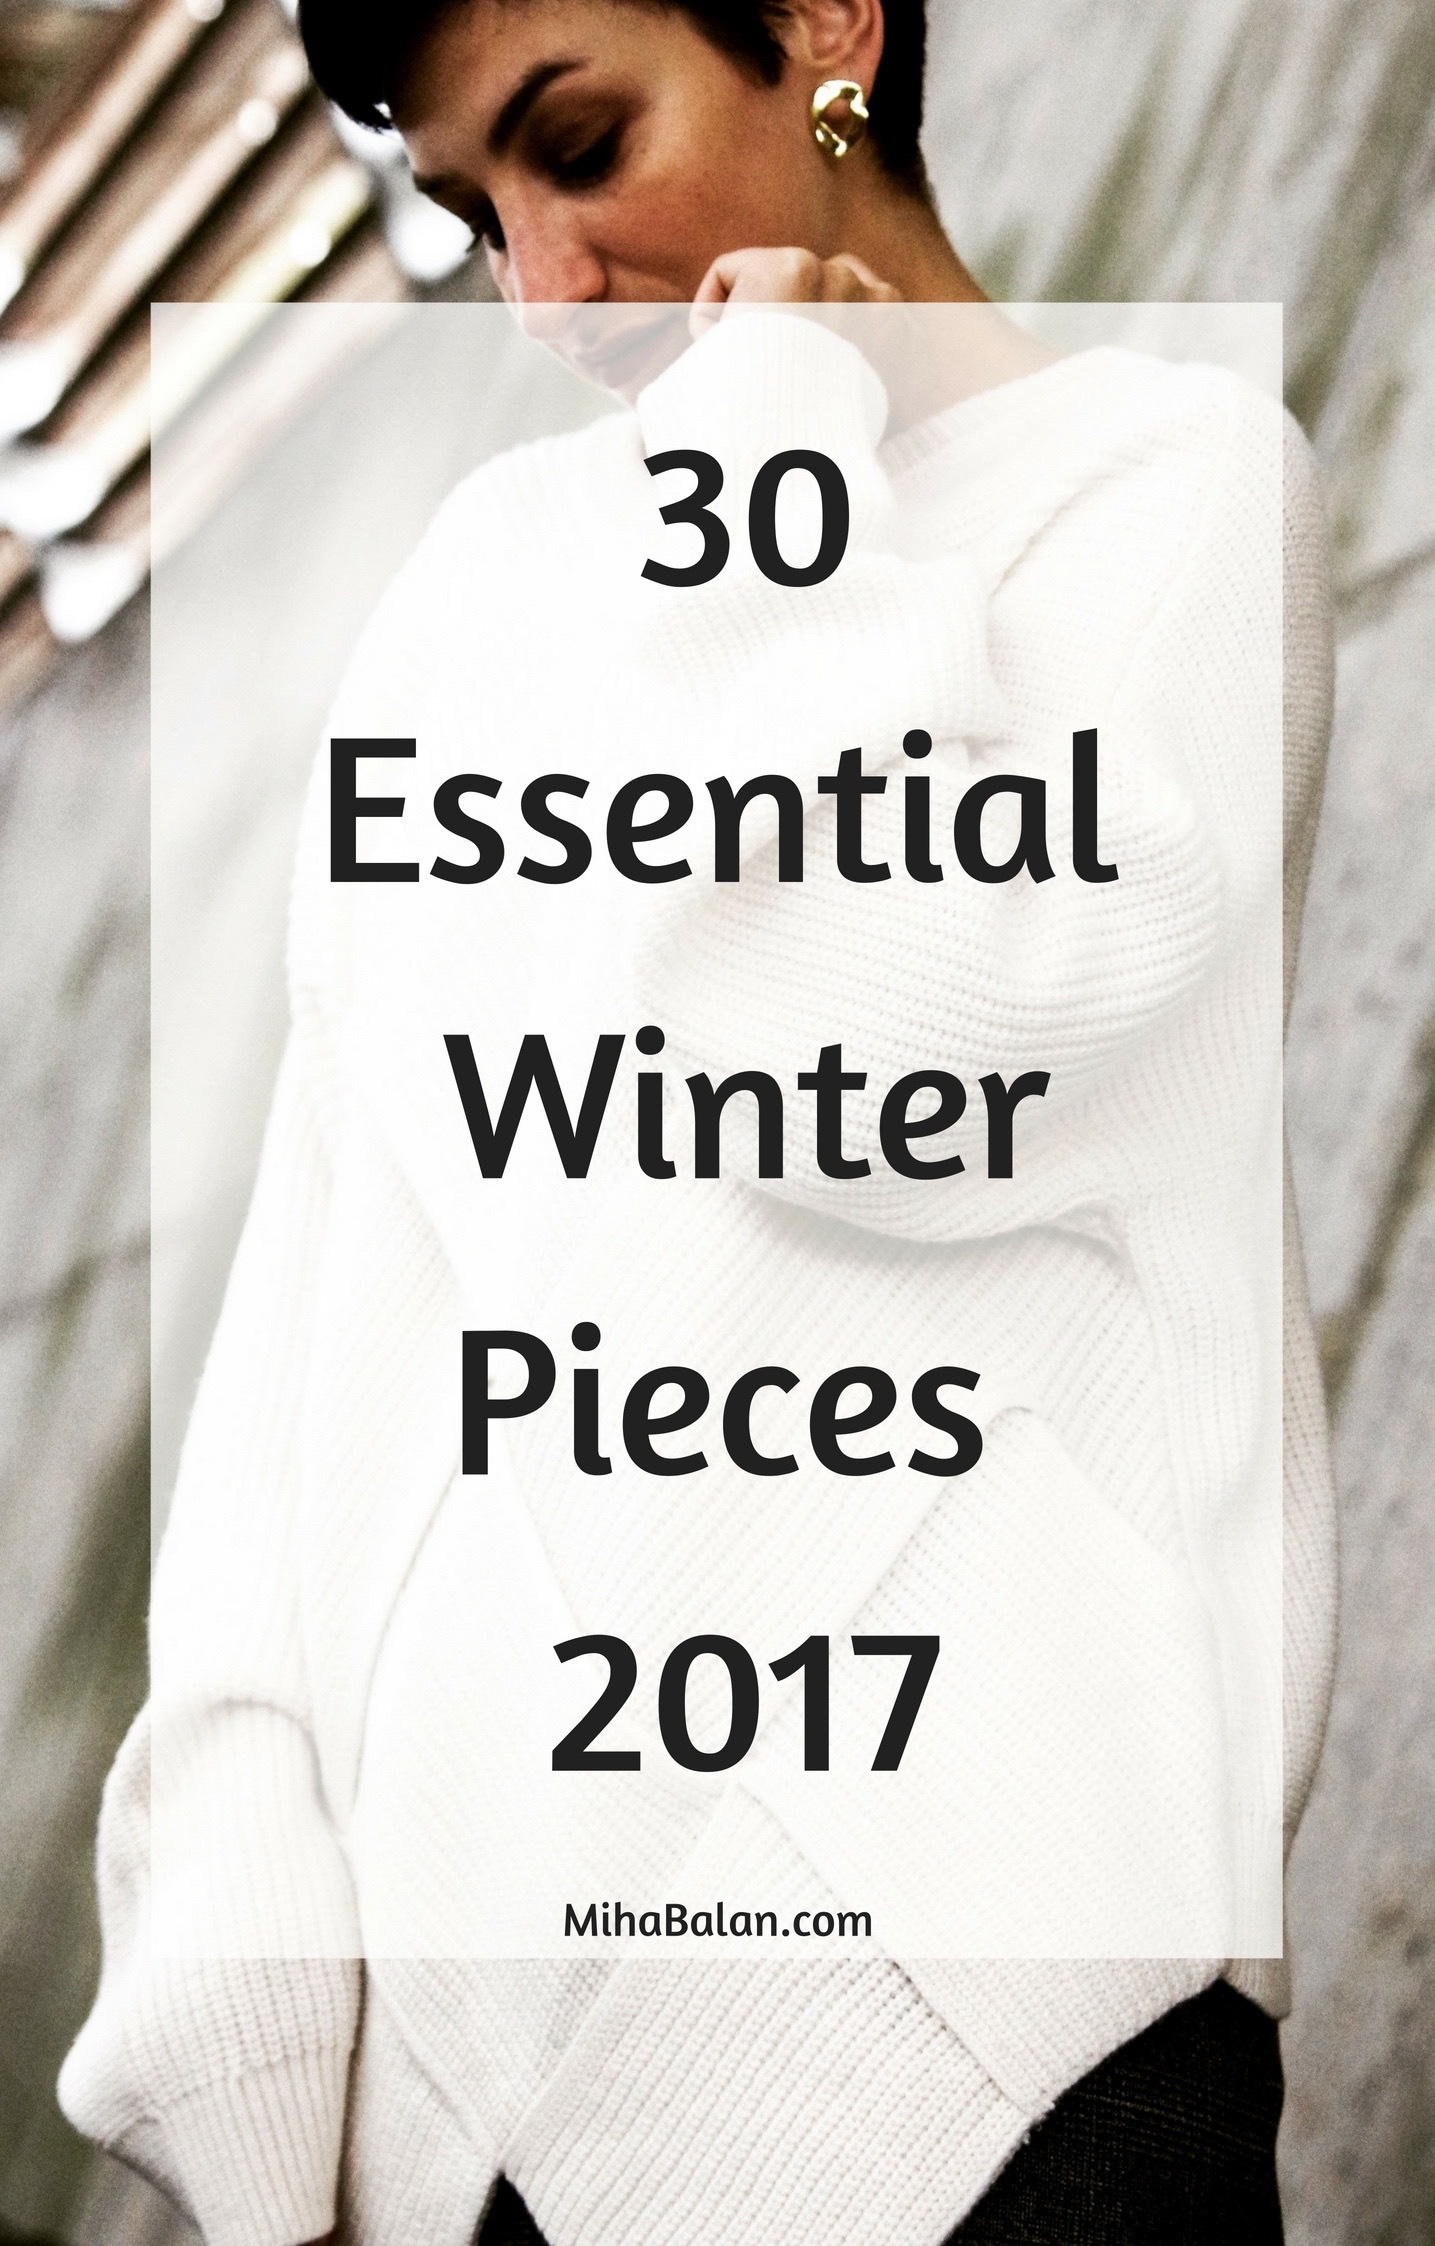 30 Essential Winter Pieces 2017, women fashion, winter outfits, coats, jackets, sweaters, boots, accesories for winter for women